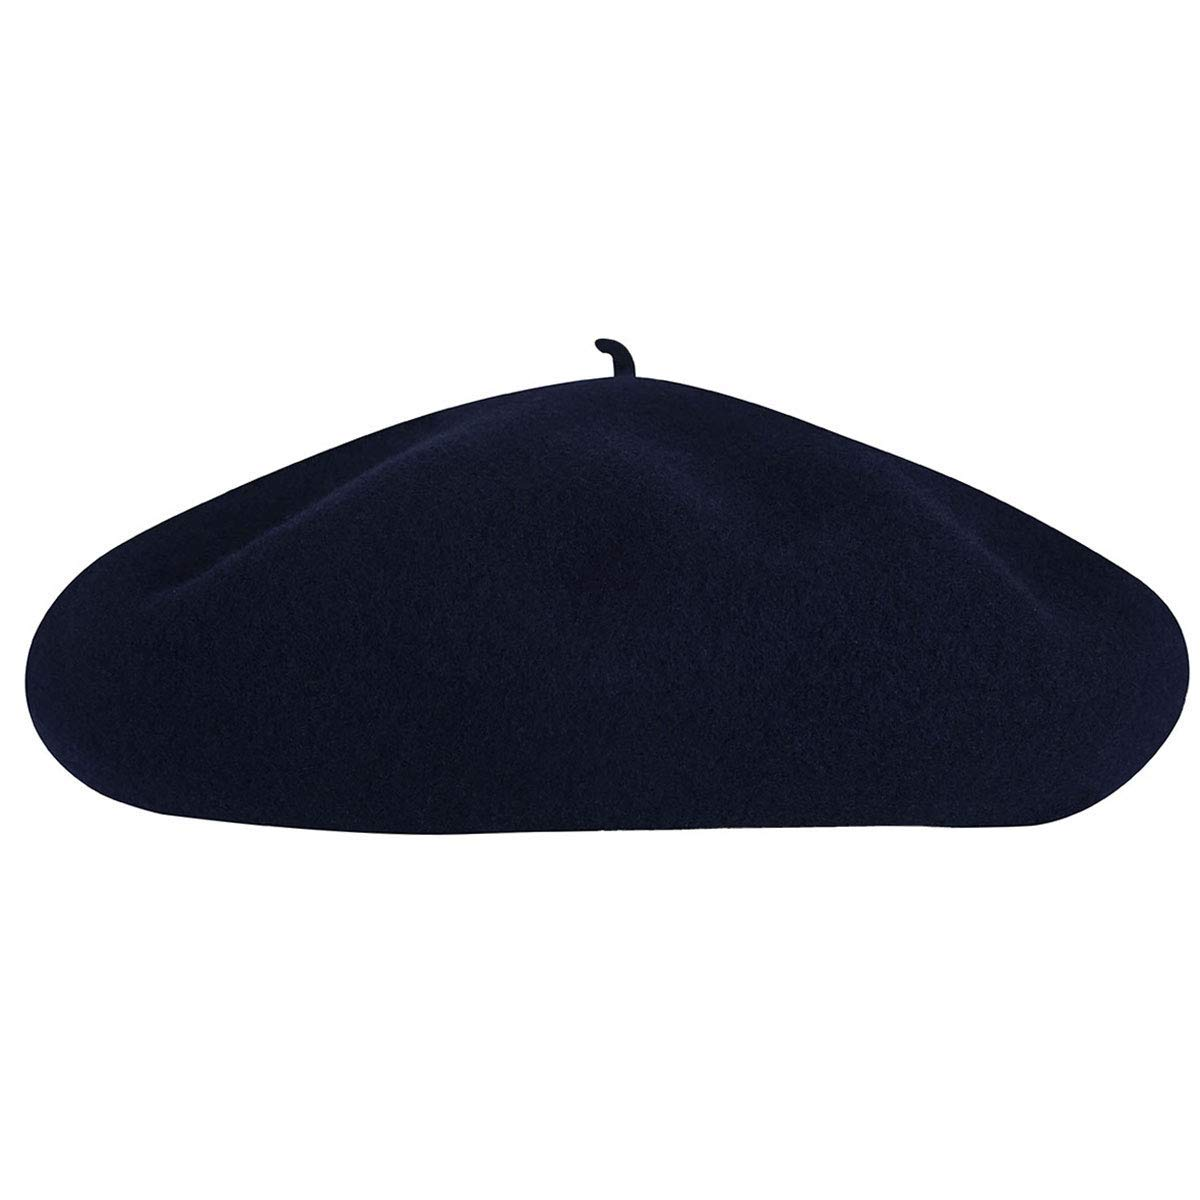 Kangol Men's Anglobasque Beret, From the Heritage Collection, Dark Blue (Large) by Kangol (Image #4)